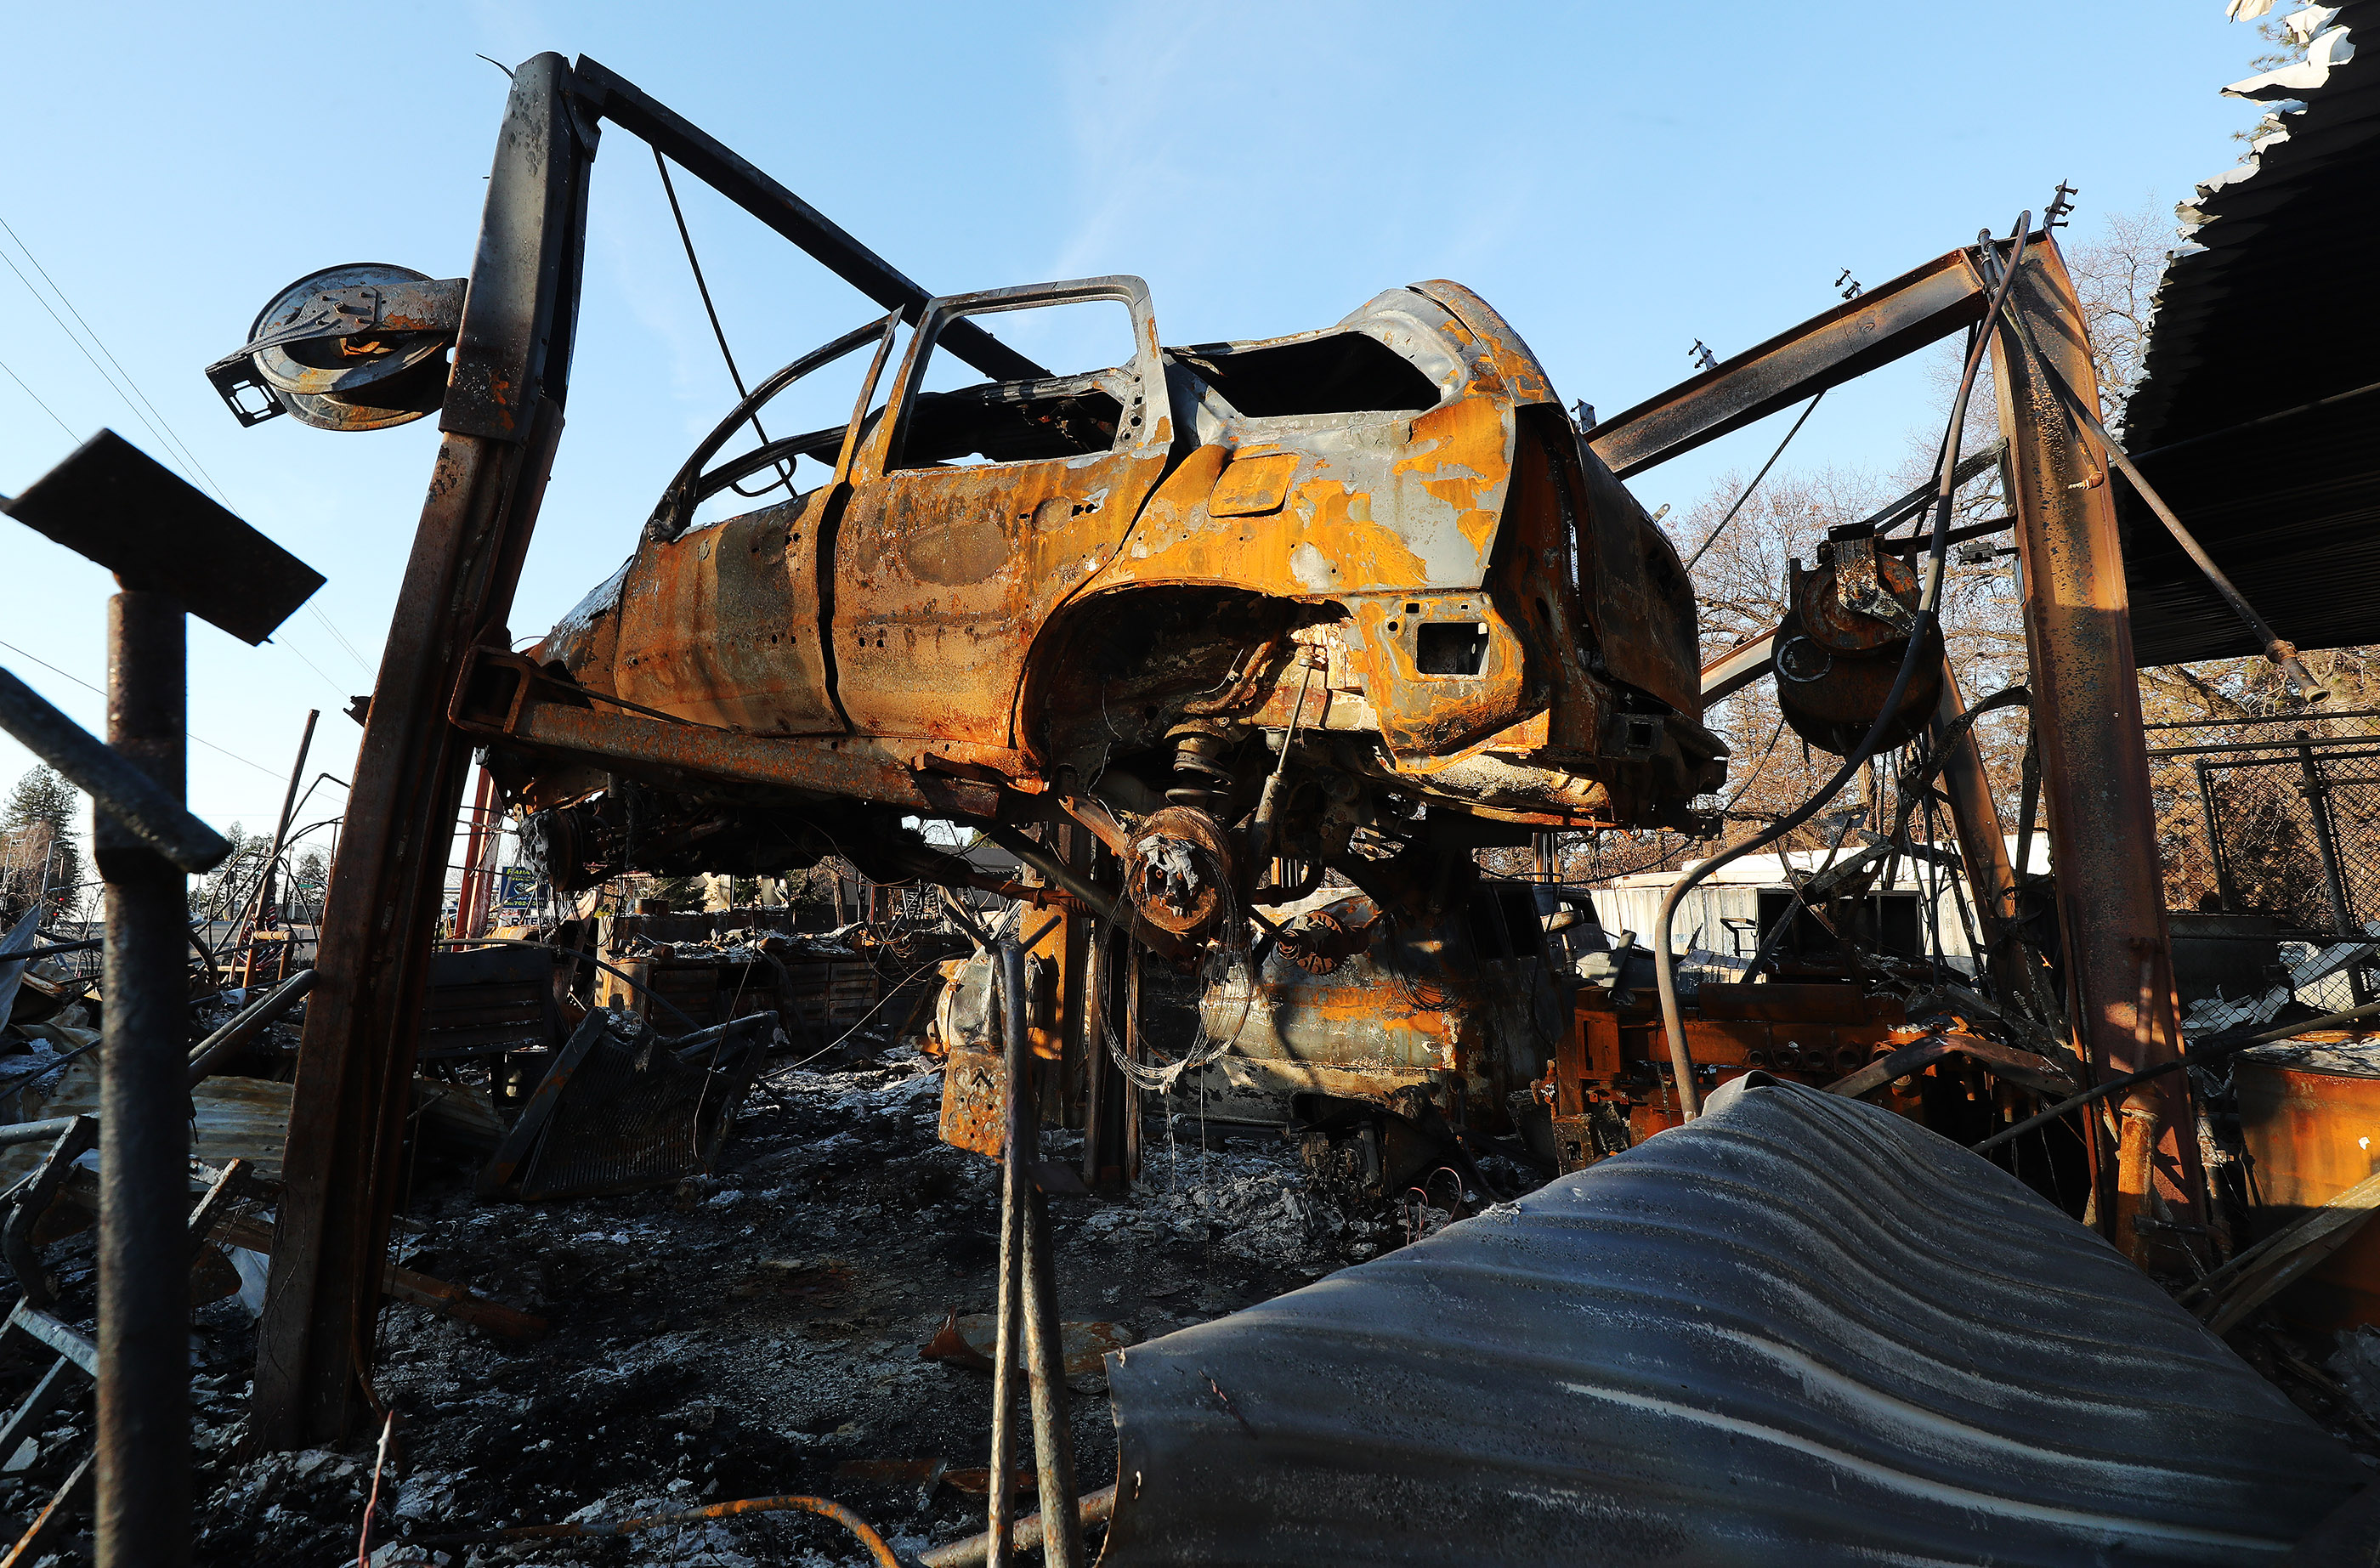 A car on a hoist remains in Paradise, California, on Saturday, Jan. 12, 2019, two months after the Camp Fire destroyed more than 18,000 homes and businesses.